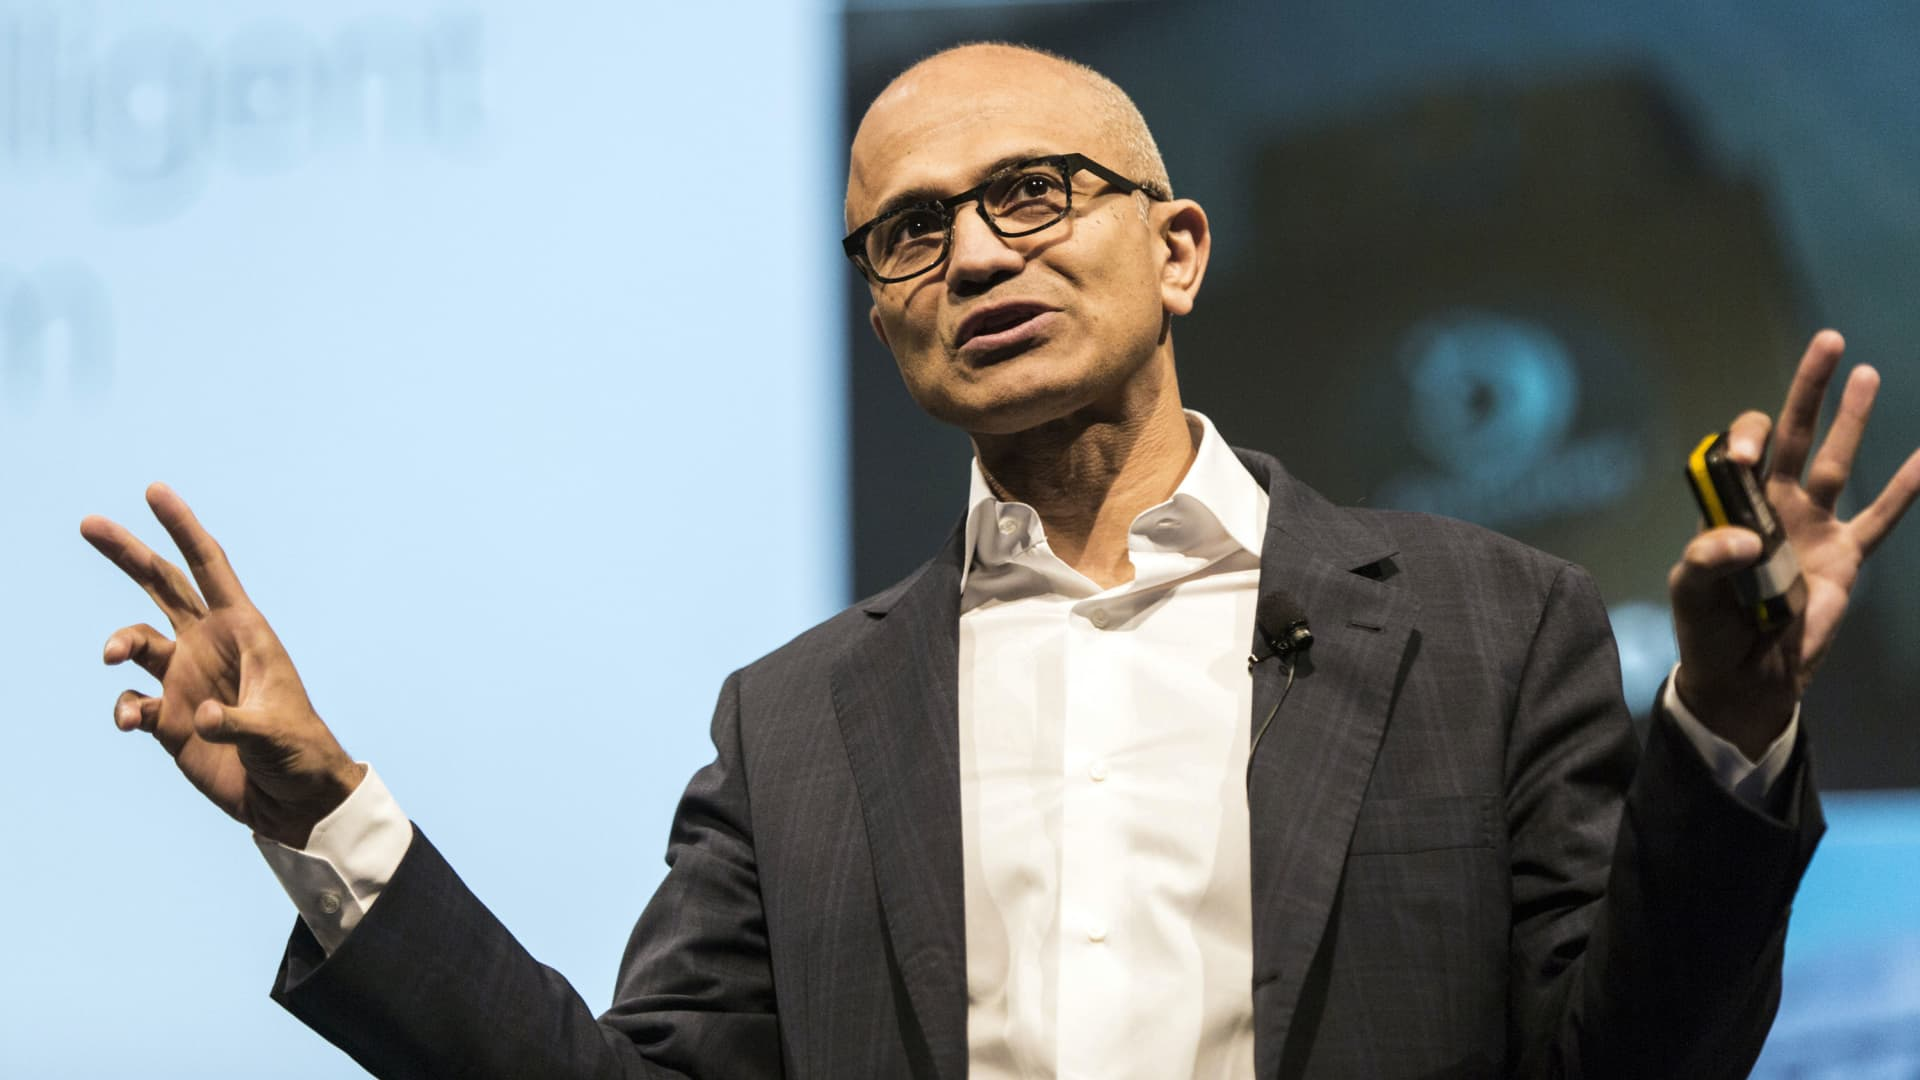 Satya Nadella, chief executive officer of Microsoft Corp., speaks during the opening keynote session at the Microsoft Developer Day in Singapore, on Friday, May 27, 2016. Microsoft has all but abandoned the smartphone game. The company said Wednesday that it will axe as many as 1,850 jobs, many of them in Finland -- home base of the handset business Microsoft acquired two years ago from Nokia Oyj.